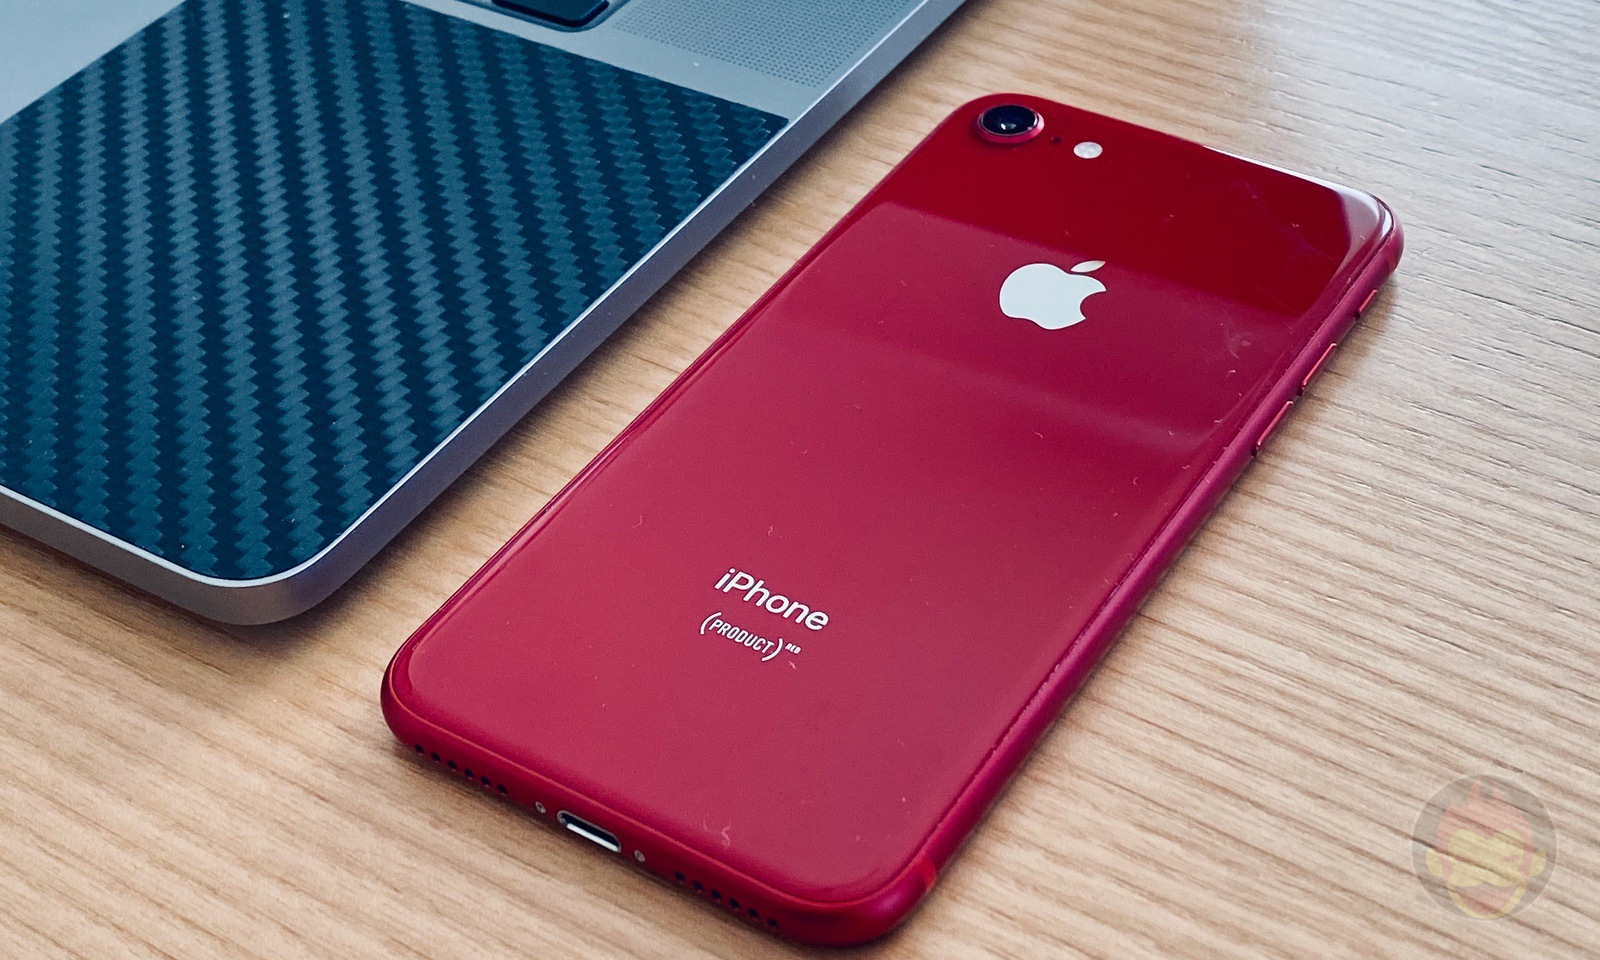 Iphone 5 4 inch maybe iphone8 body 02